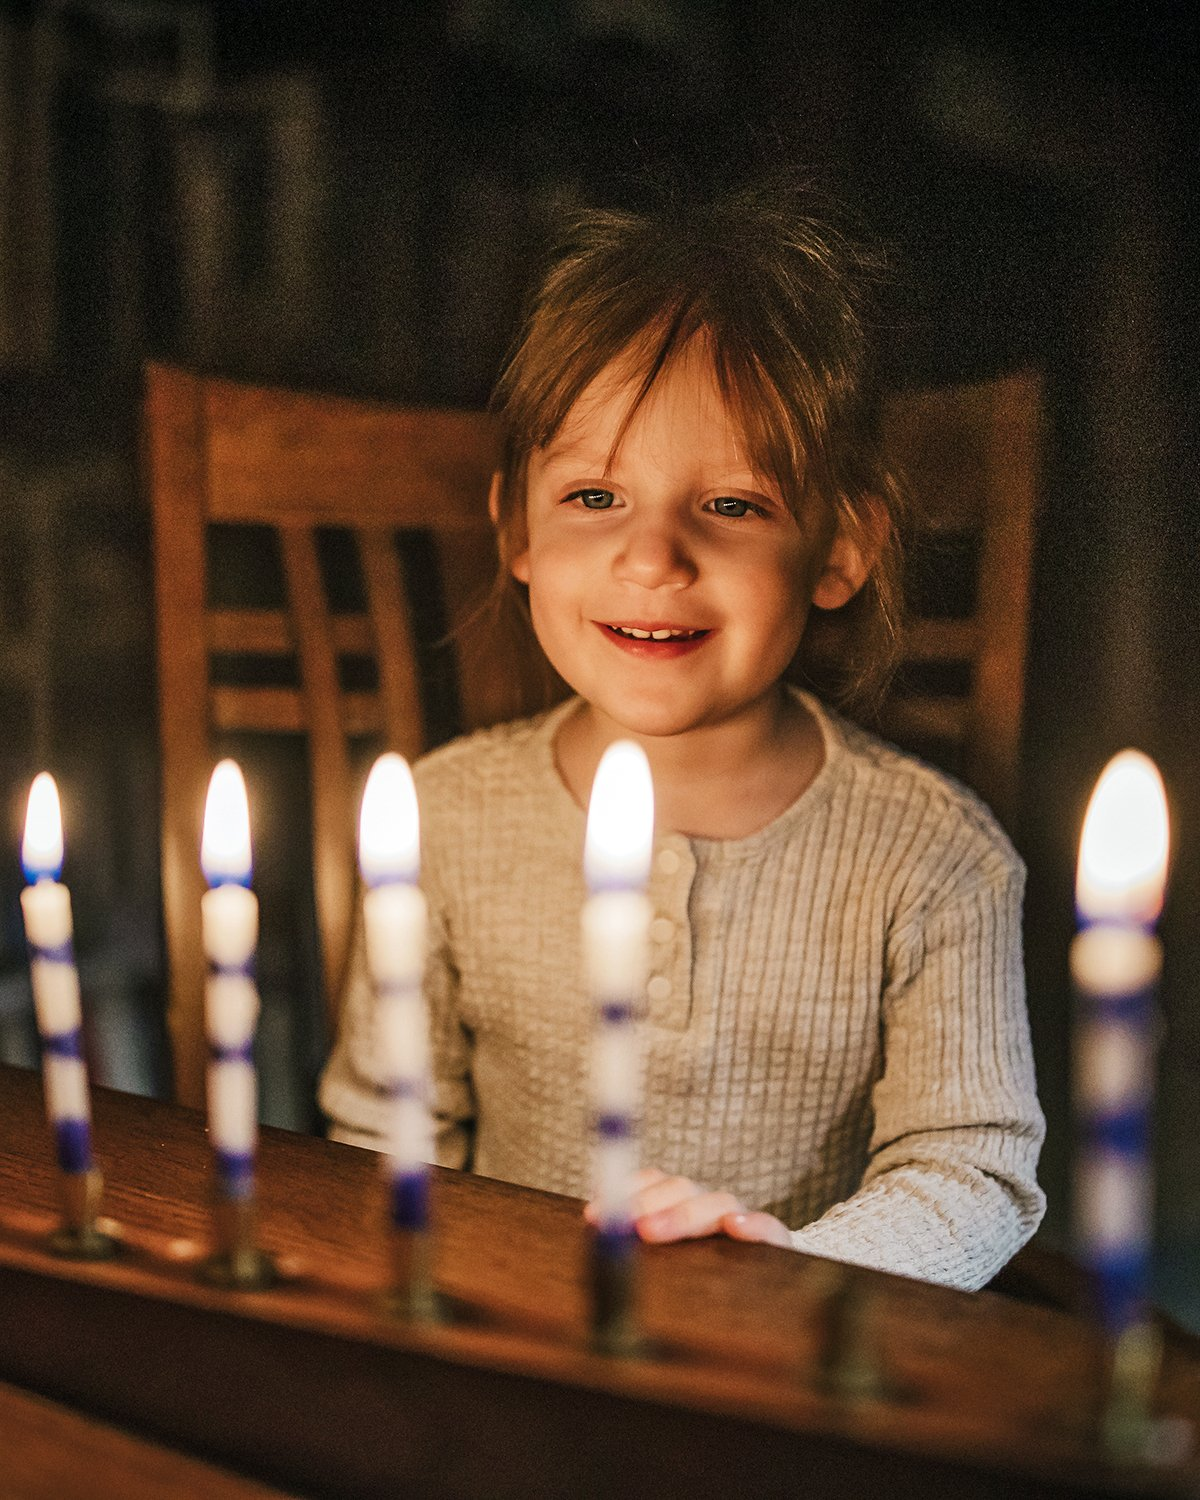 Adee Briggs, 3, learns about Chanukah and lights the Menorah candles for the first time. Photo by Sue Rollyson